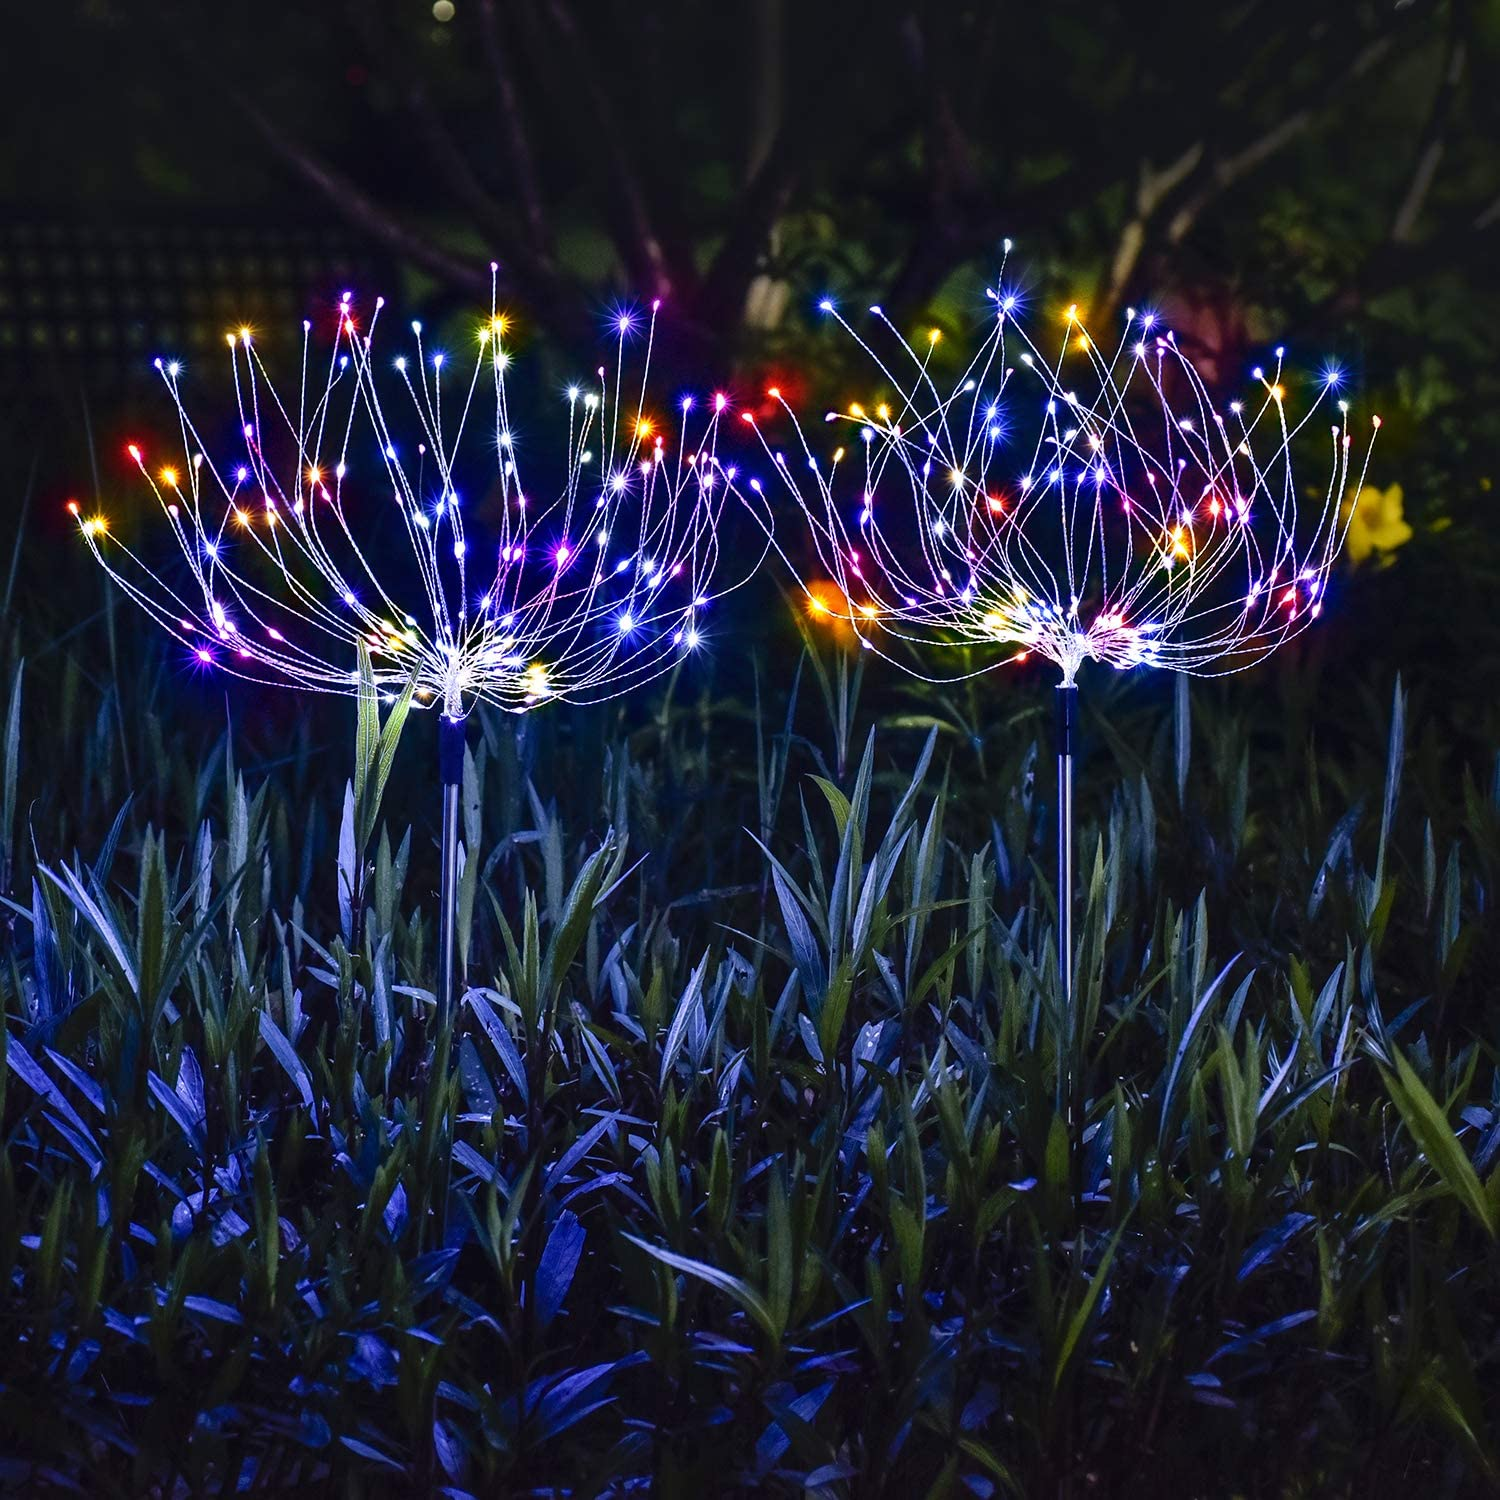 [2 Pack] ooklee Solar Garden Lights, Firework Lights, 150 LED 8 Modes Copper Wires String Landscape Light Stake Fairy Light Flowers Trees for Walkway Patio Lawn Backyard Christmas (Multi-Colored)